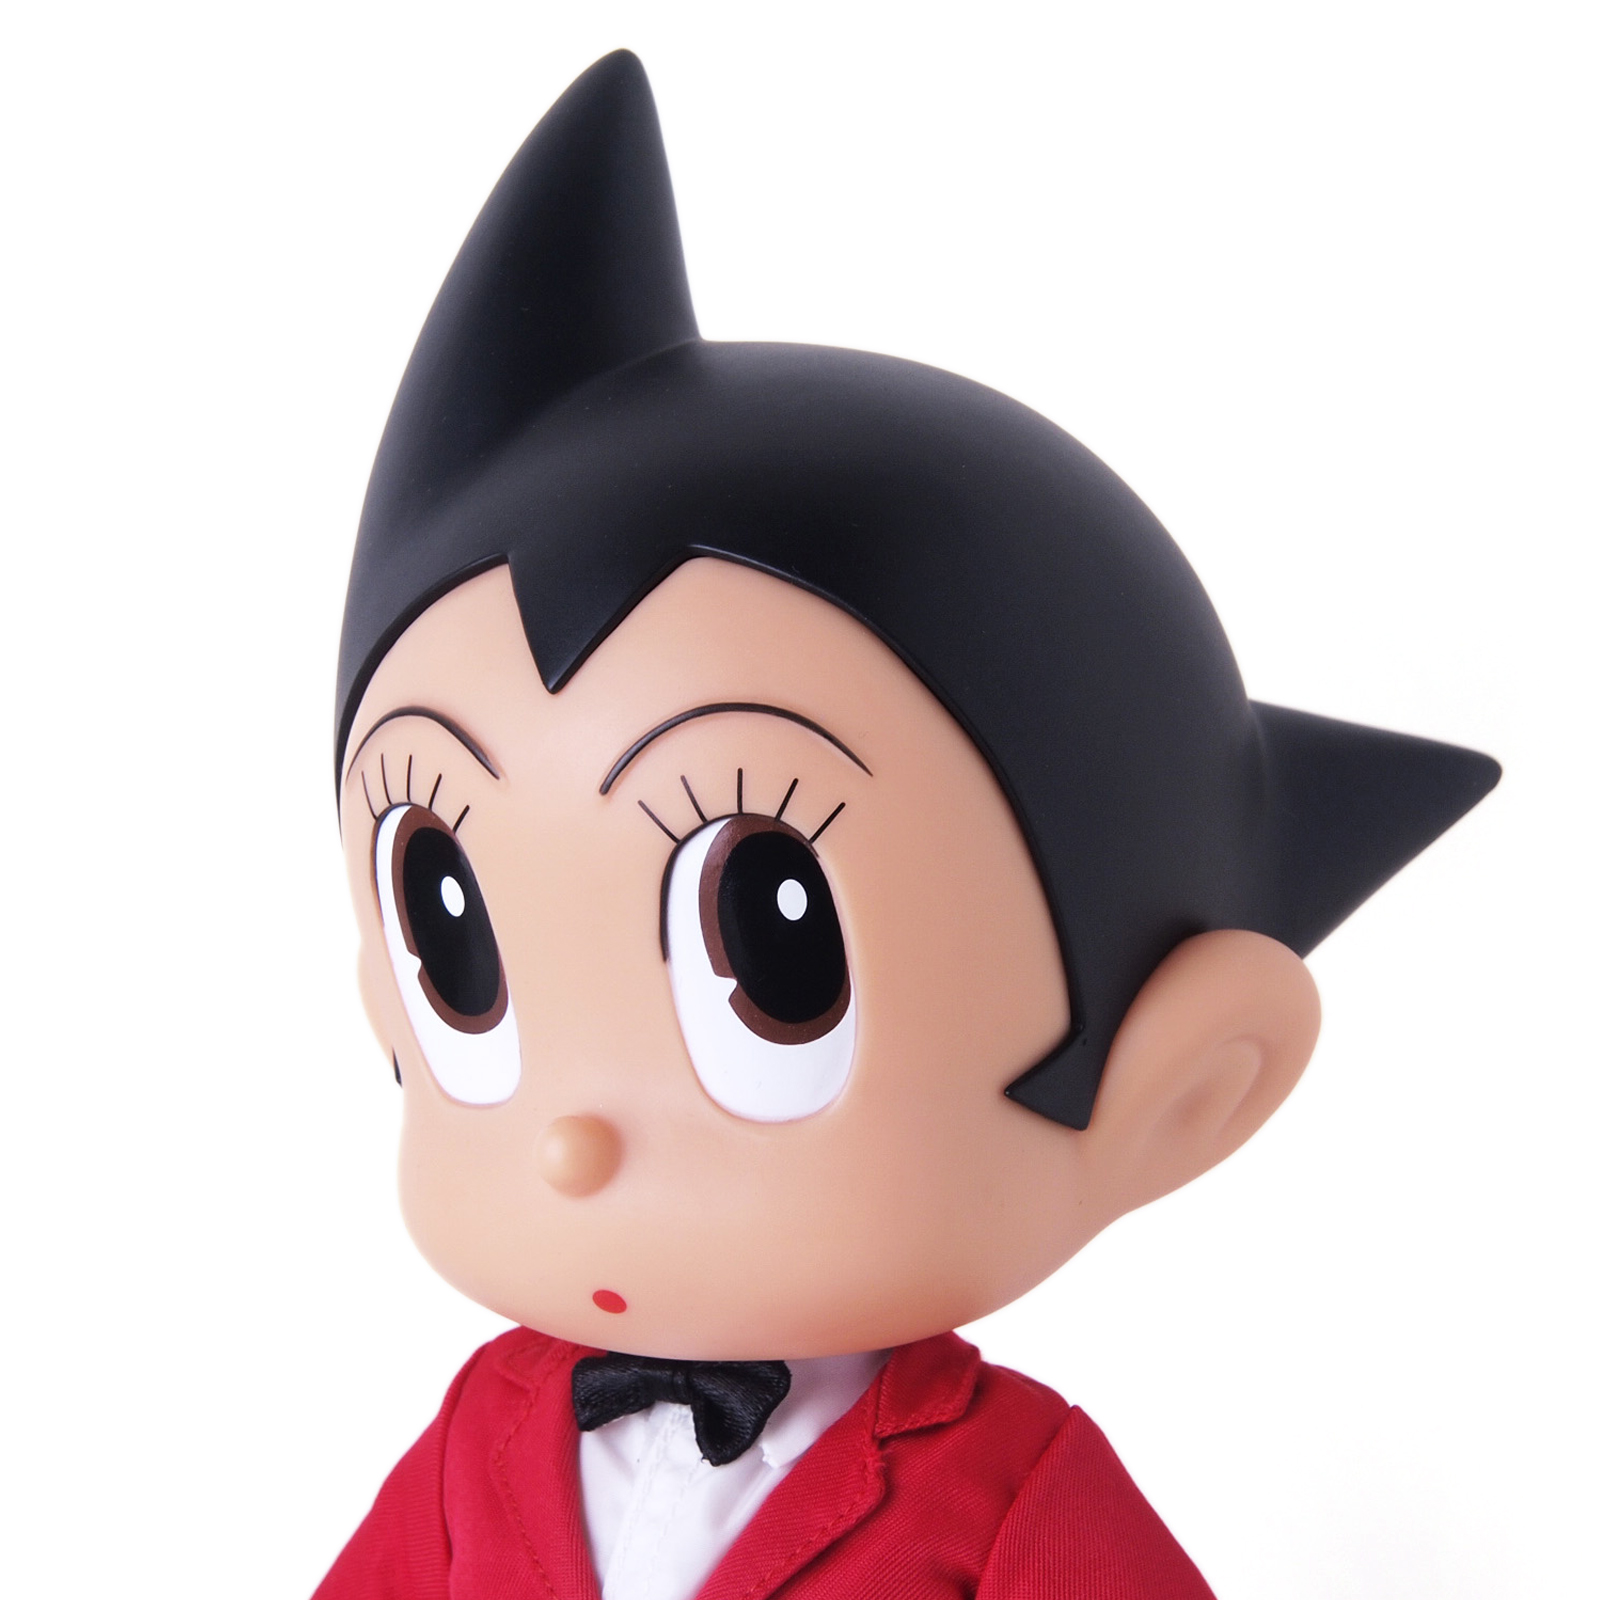 Astro Boy Action Figures Hot Toys Vinyl Collectables Master Series The Movie Figure Original Toy Collect Doll Figurine